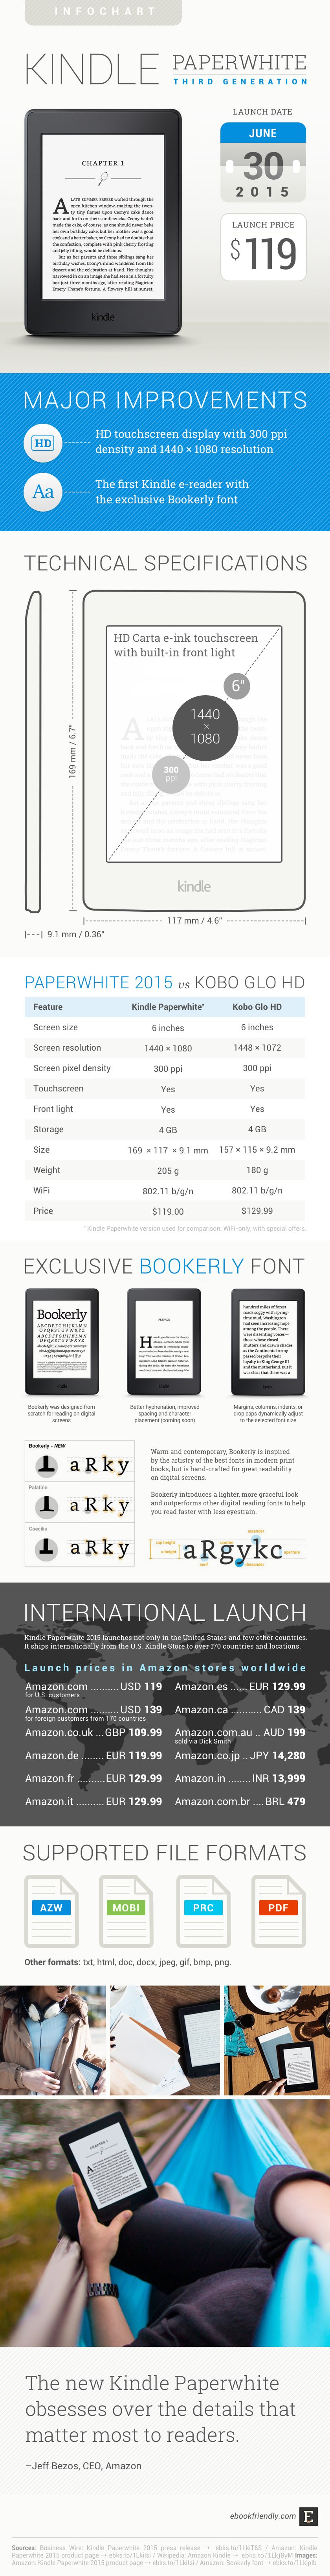 Kindle Paperwhite 2015: everything you need to know (infographic) | Ebook Friendly